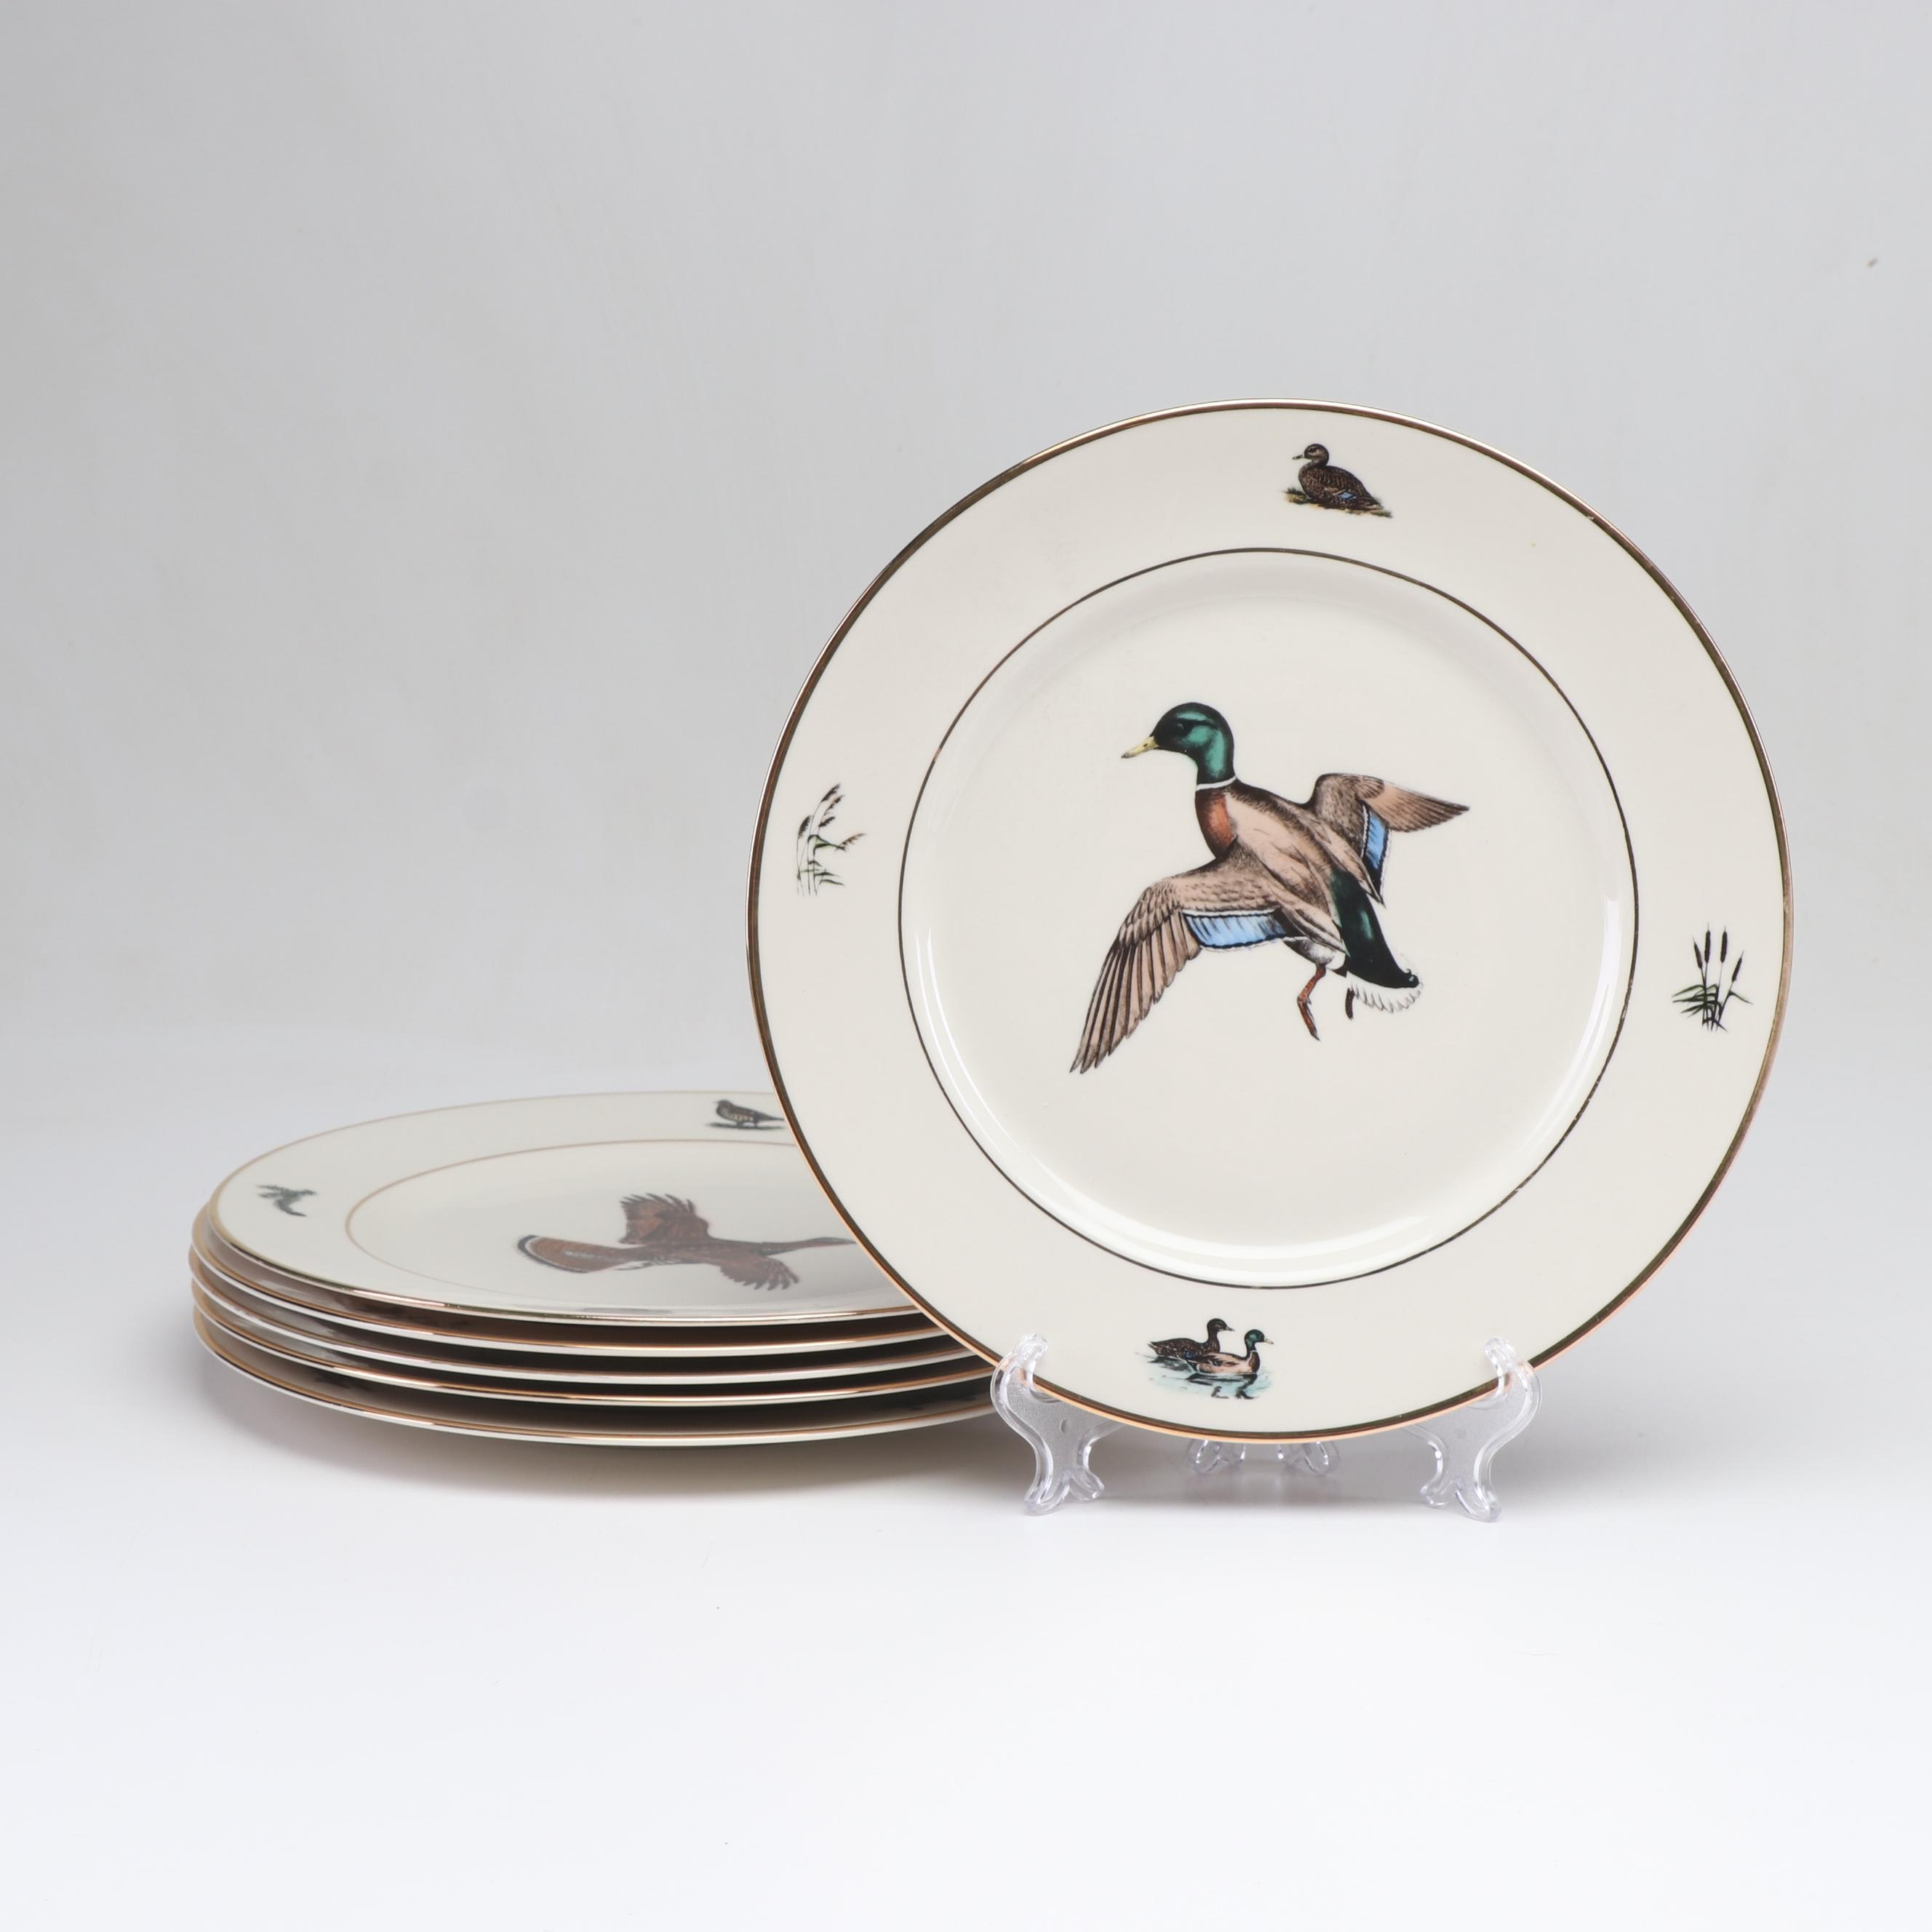 Hand-Colored Fowl Dinner Plates after Watercolor Paintings by Dennis Puleston